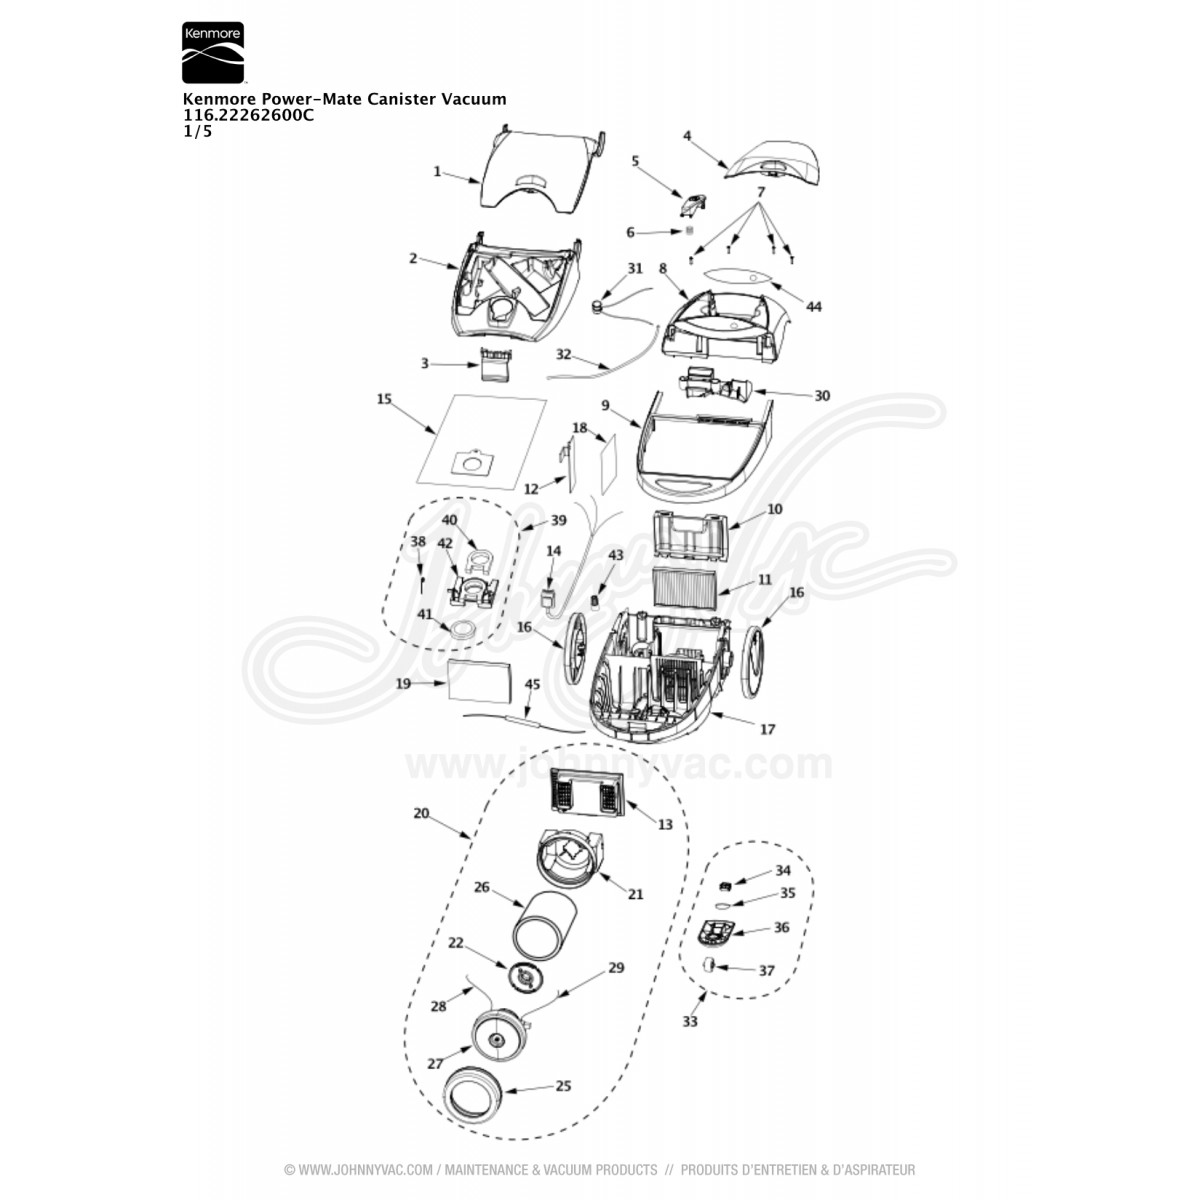 Kenmore Power Mate Canister Vacuum Red Pepper 11622262600c Wiring Diagram